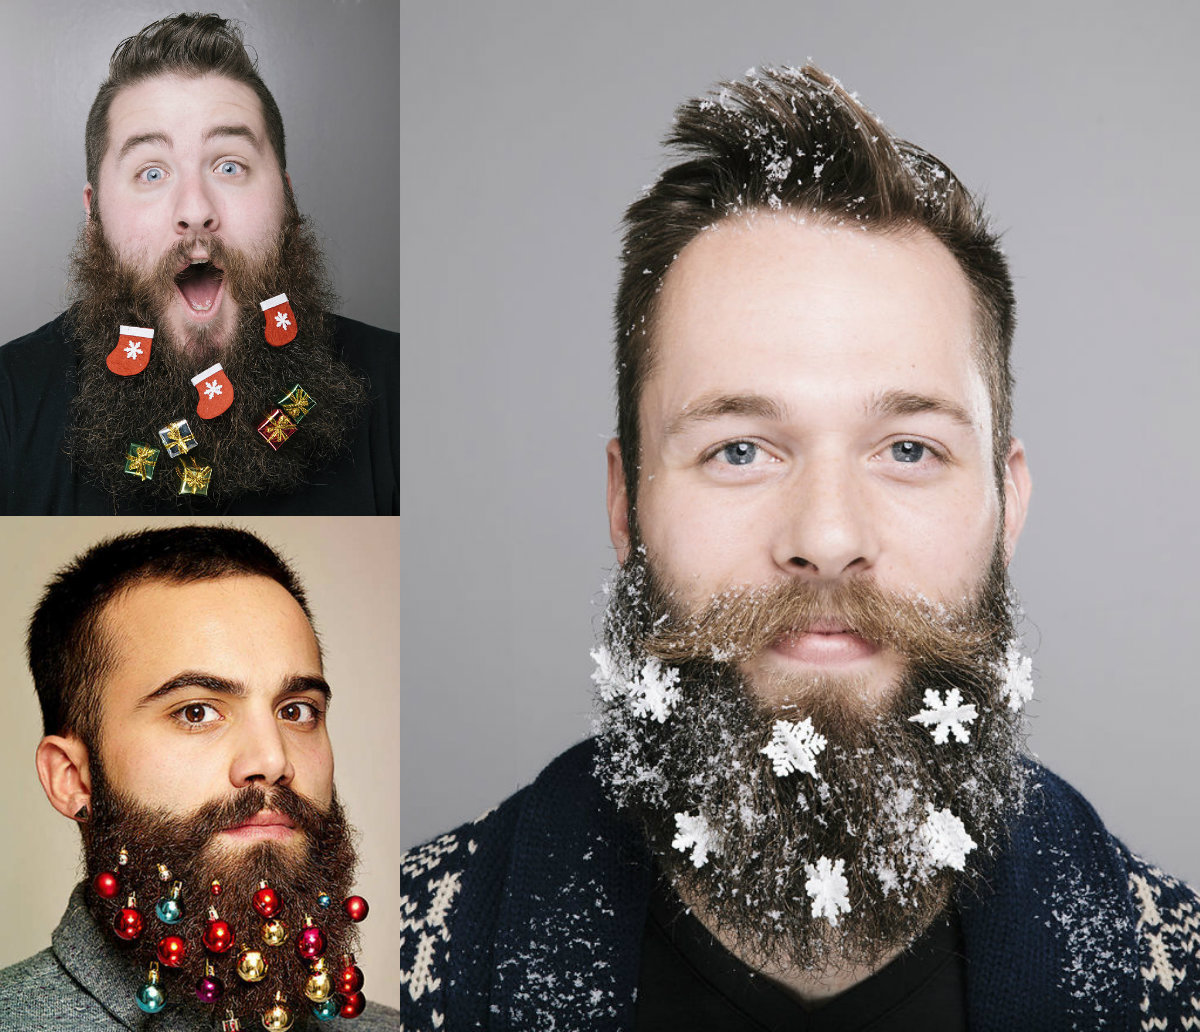 funny christmas beard decoration & men's hairstyles | hairstyles